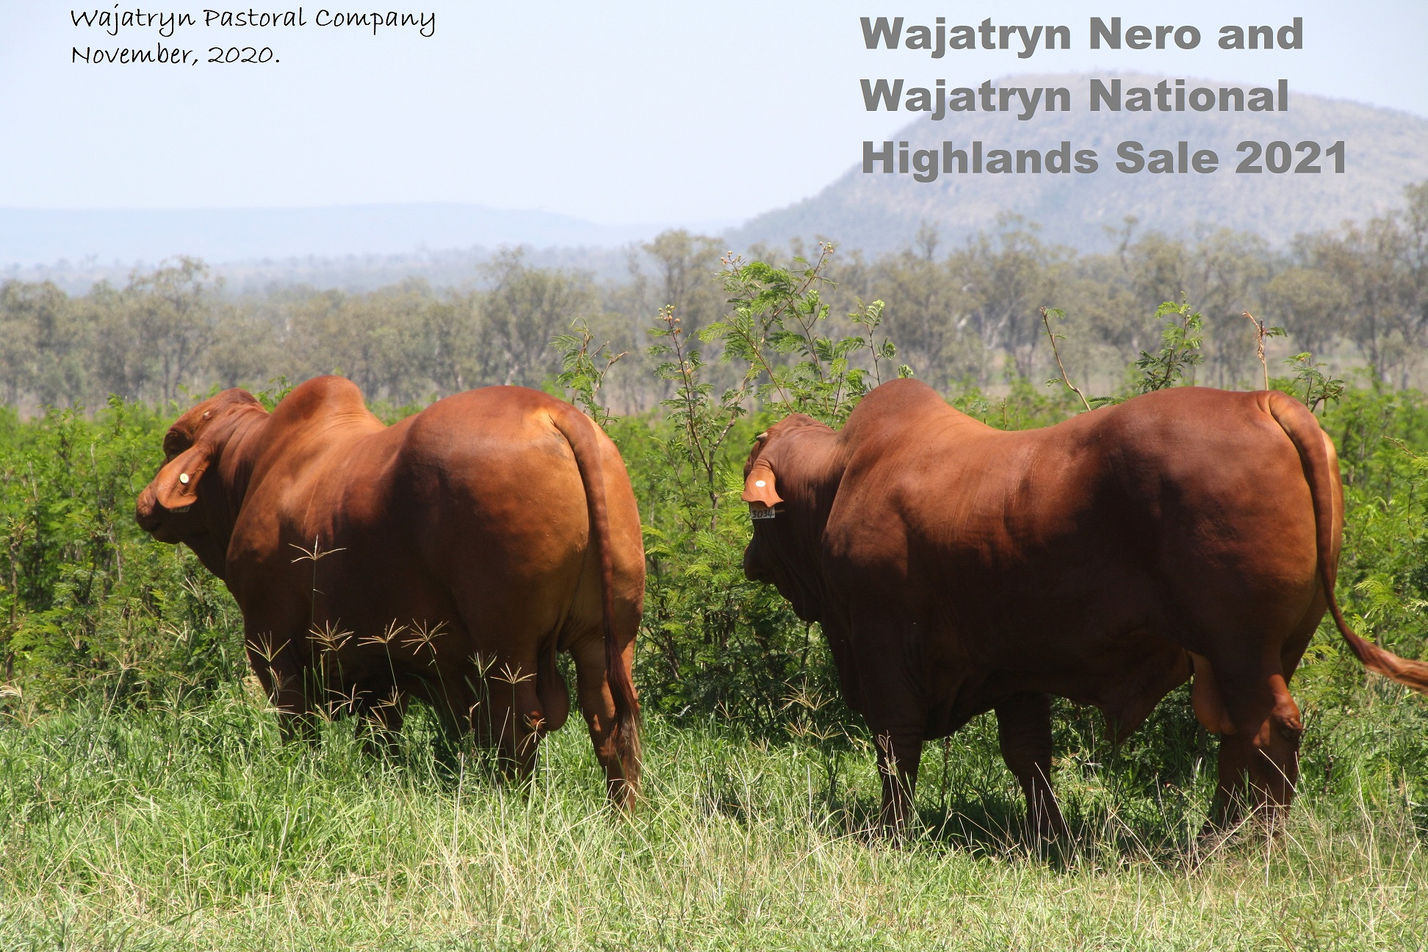 2021 bulls highlands leucaena website.jp